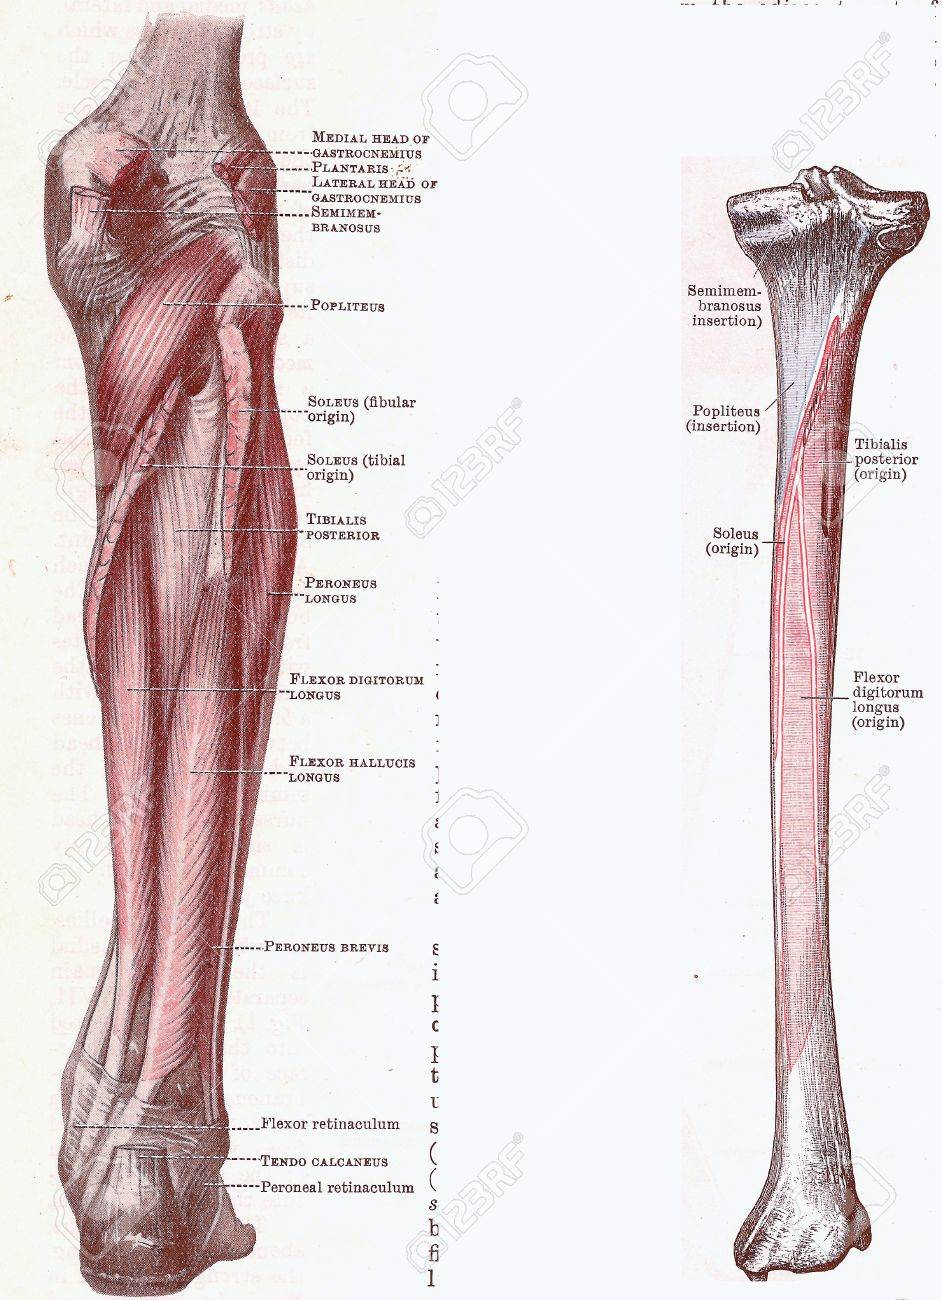 Dissection Of The Leg Muscles And Attachments From An Early